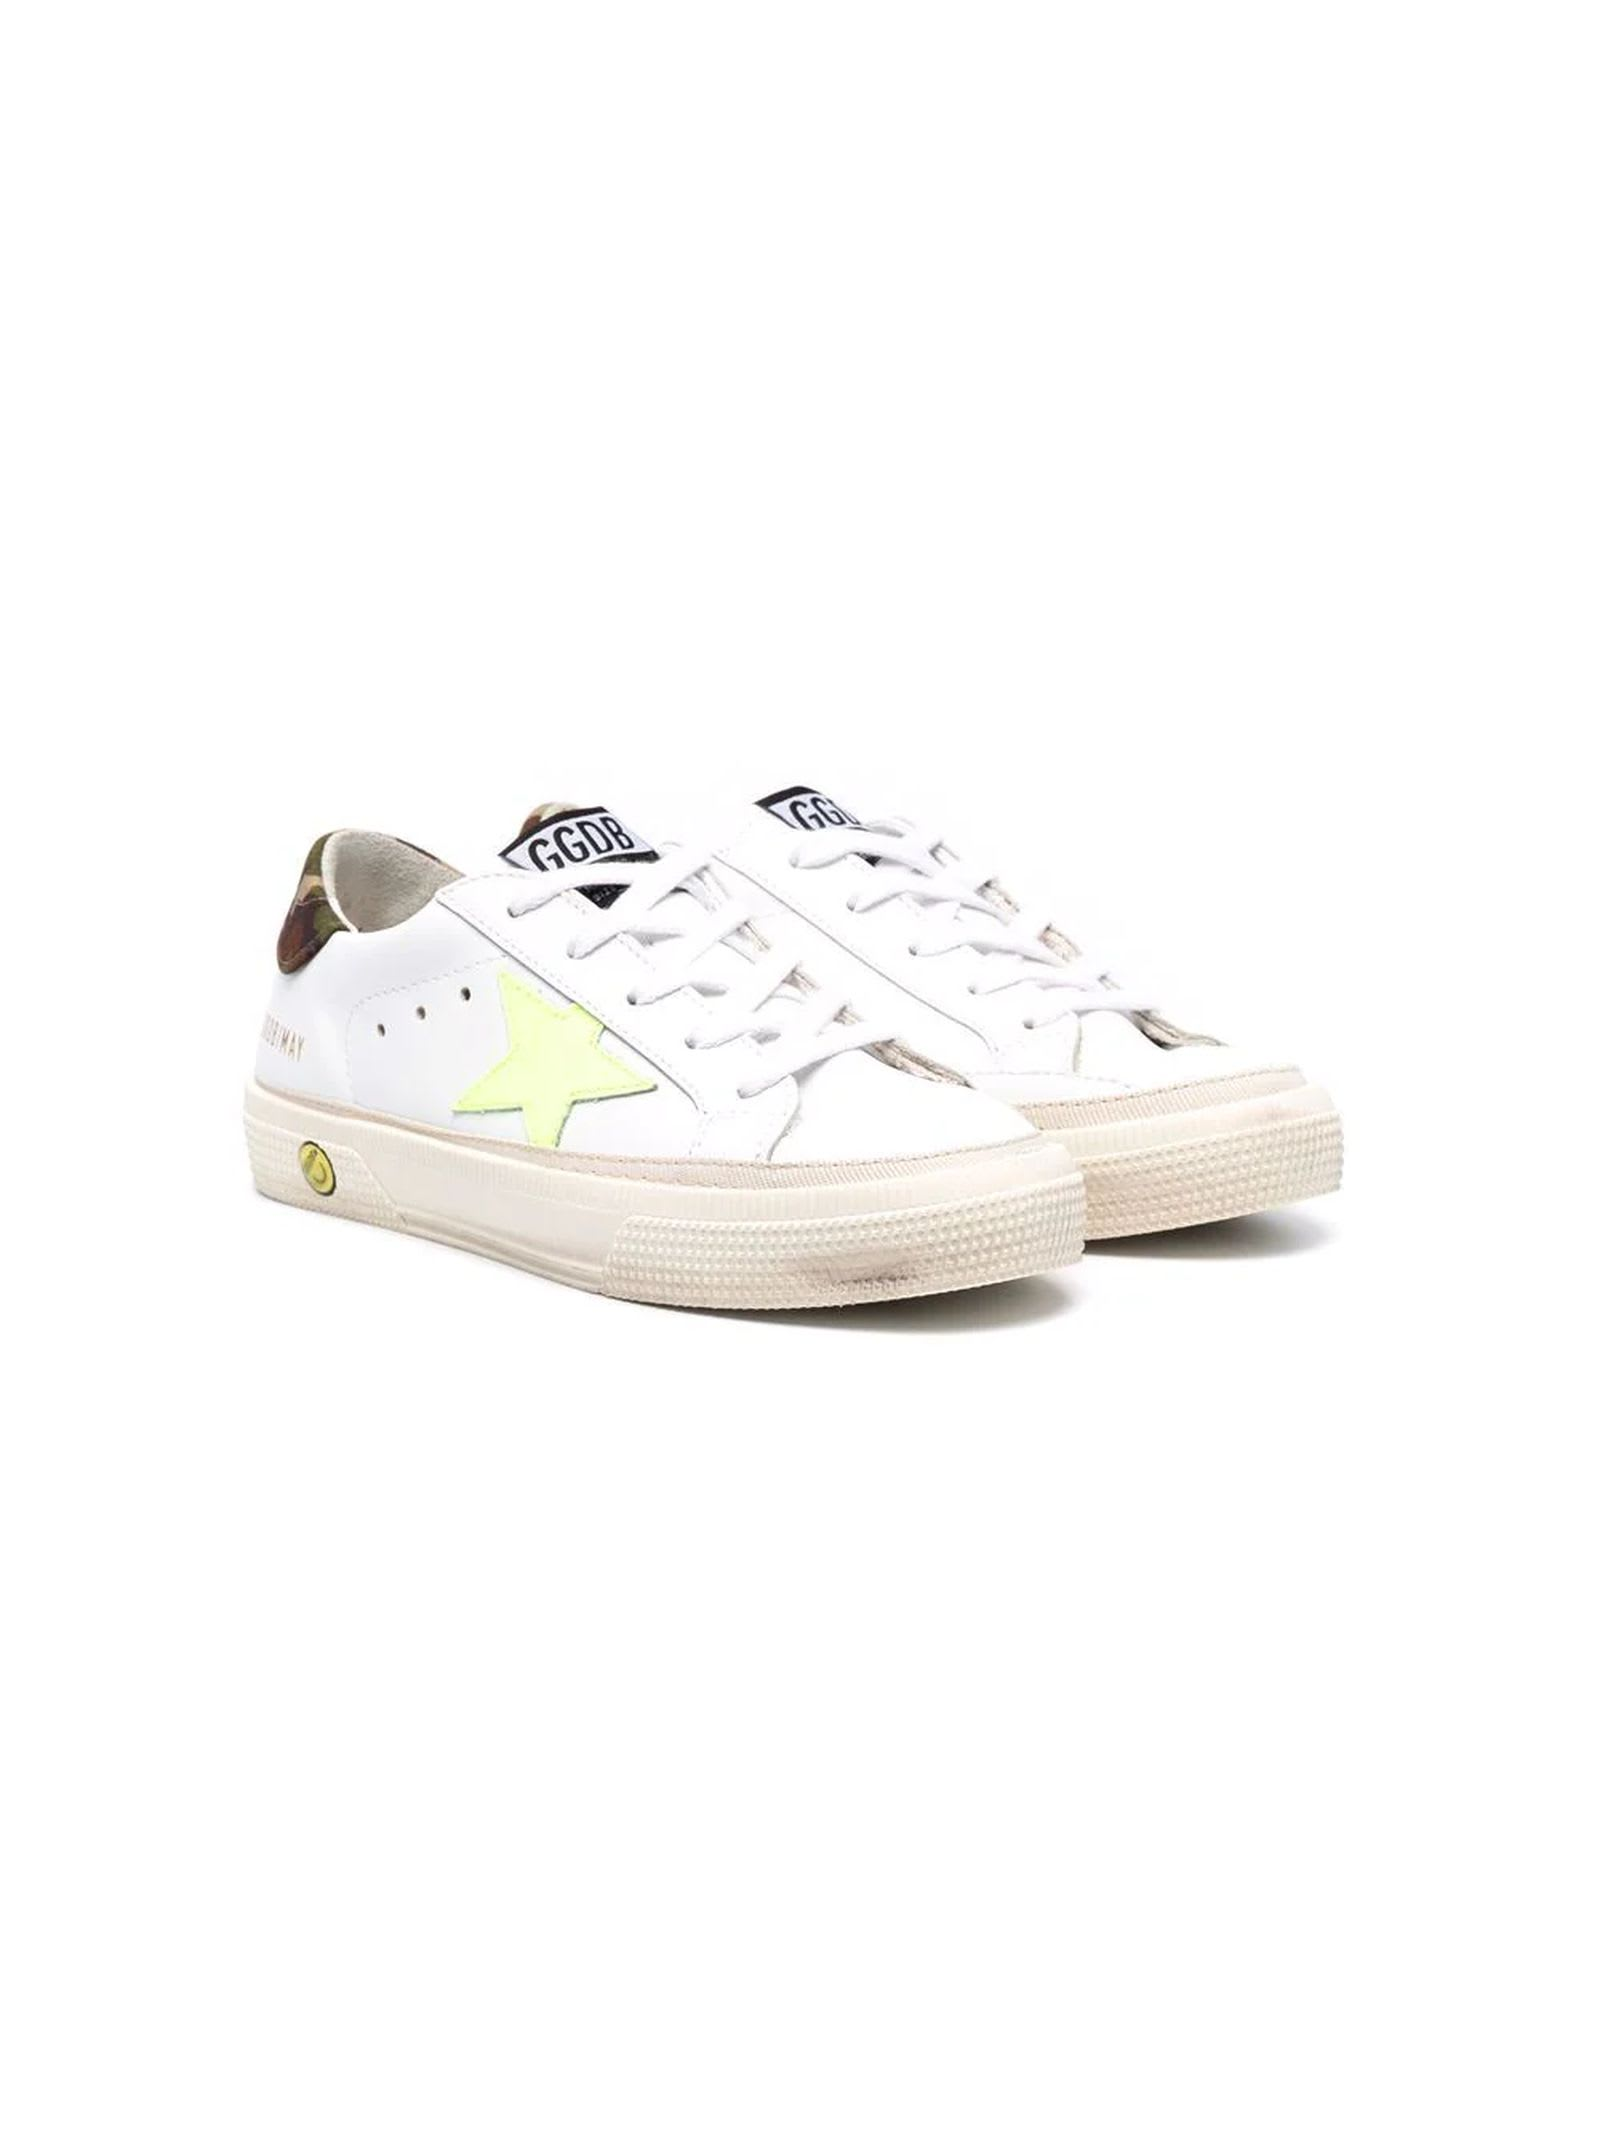 Golden Goose White Leather May Sneakers